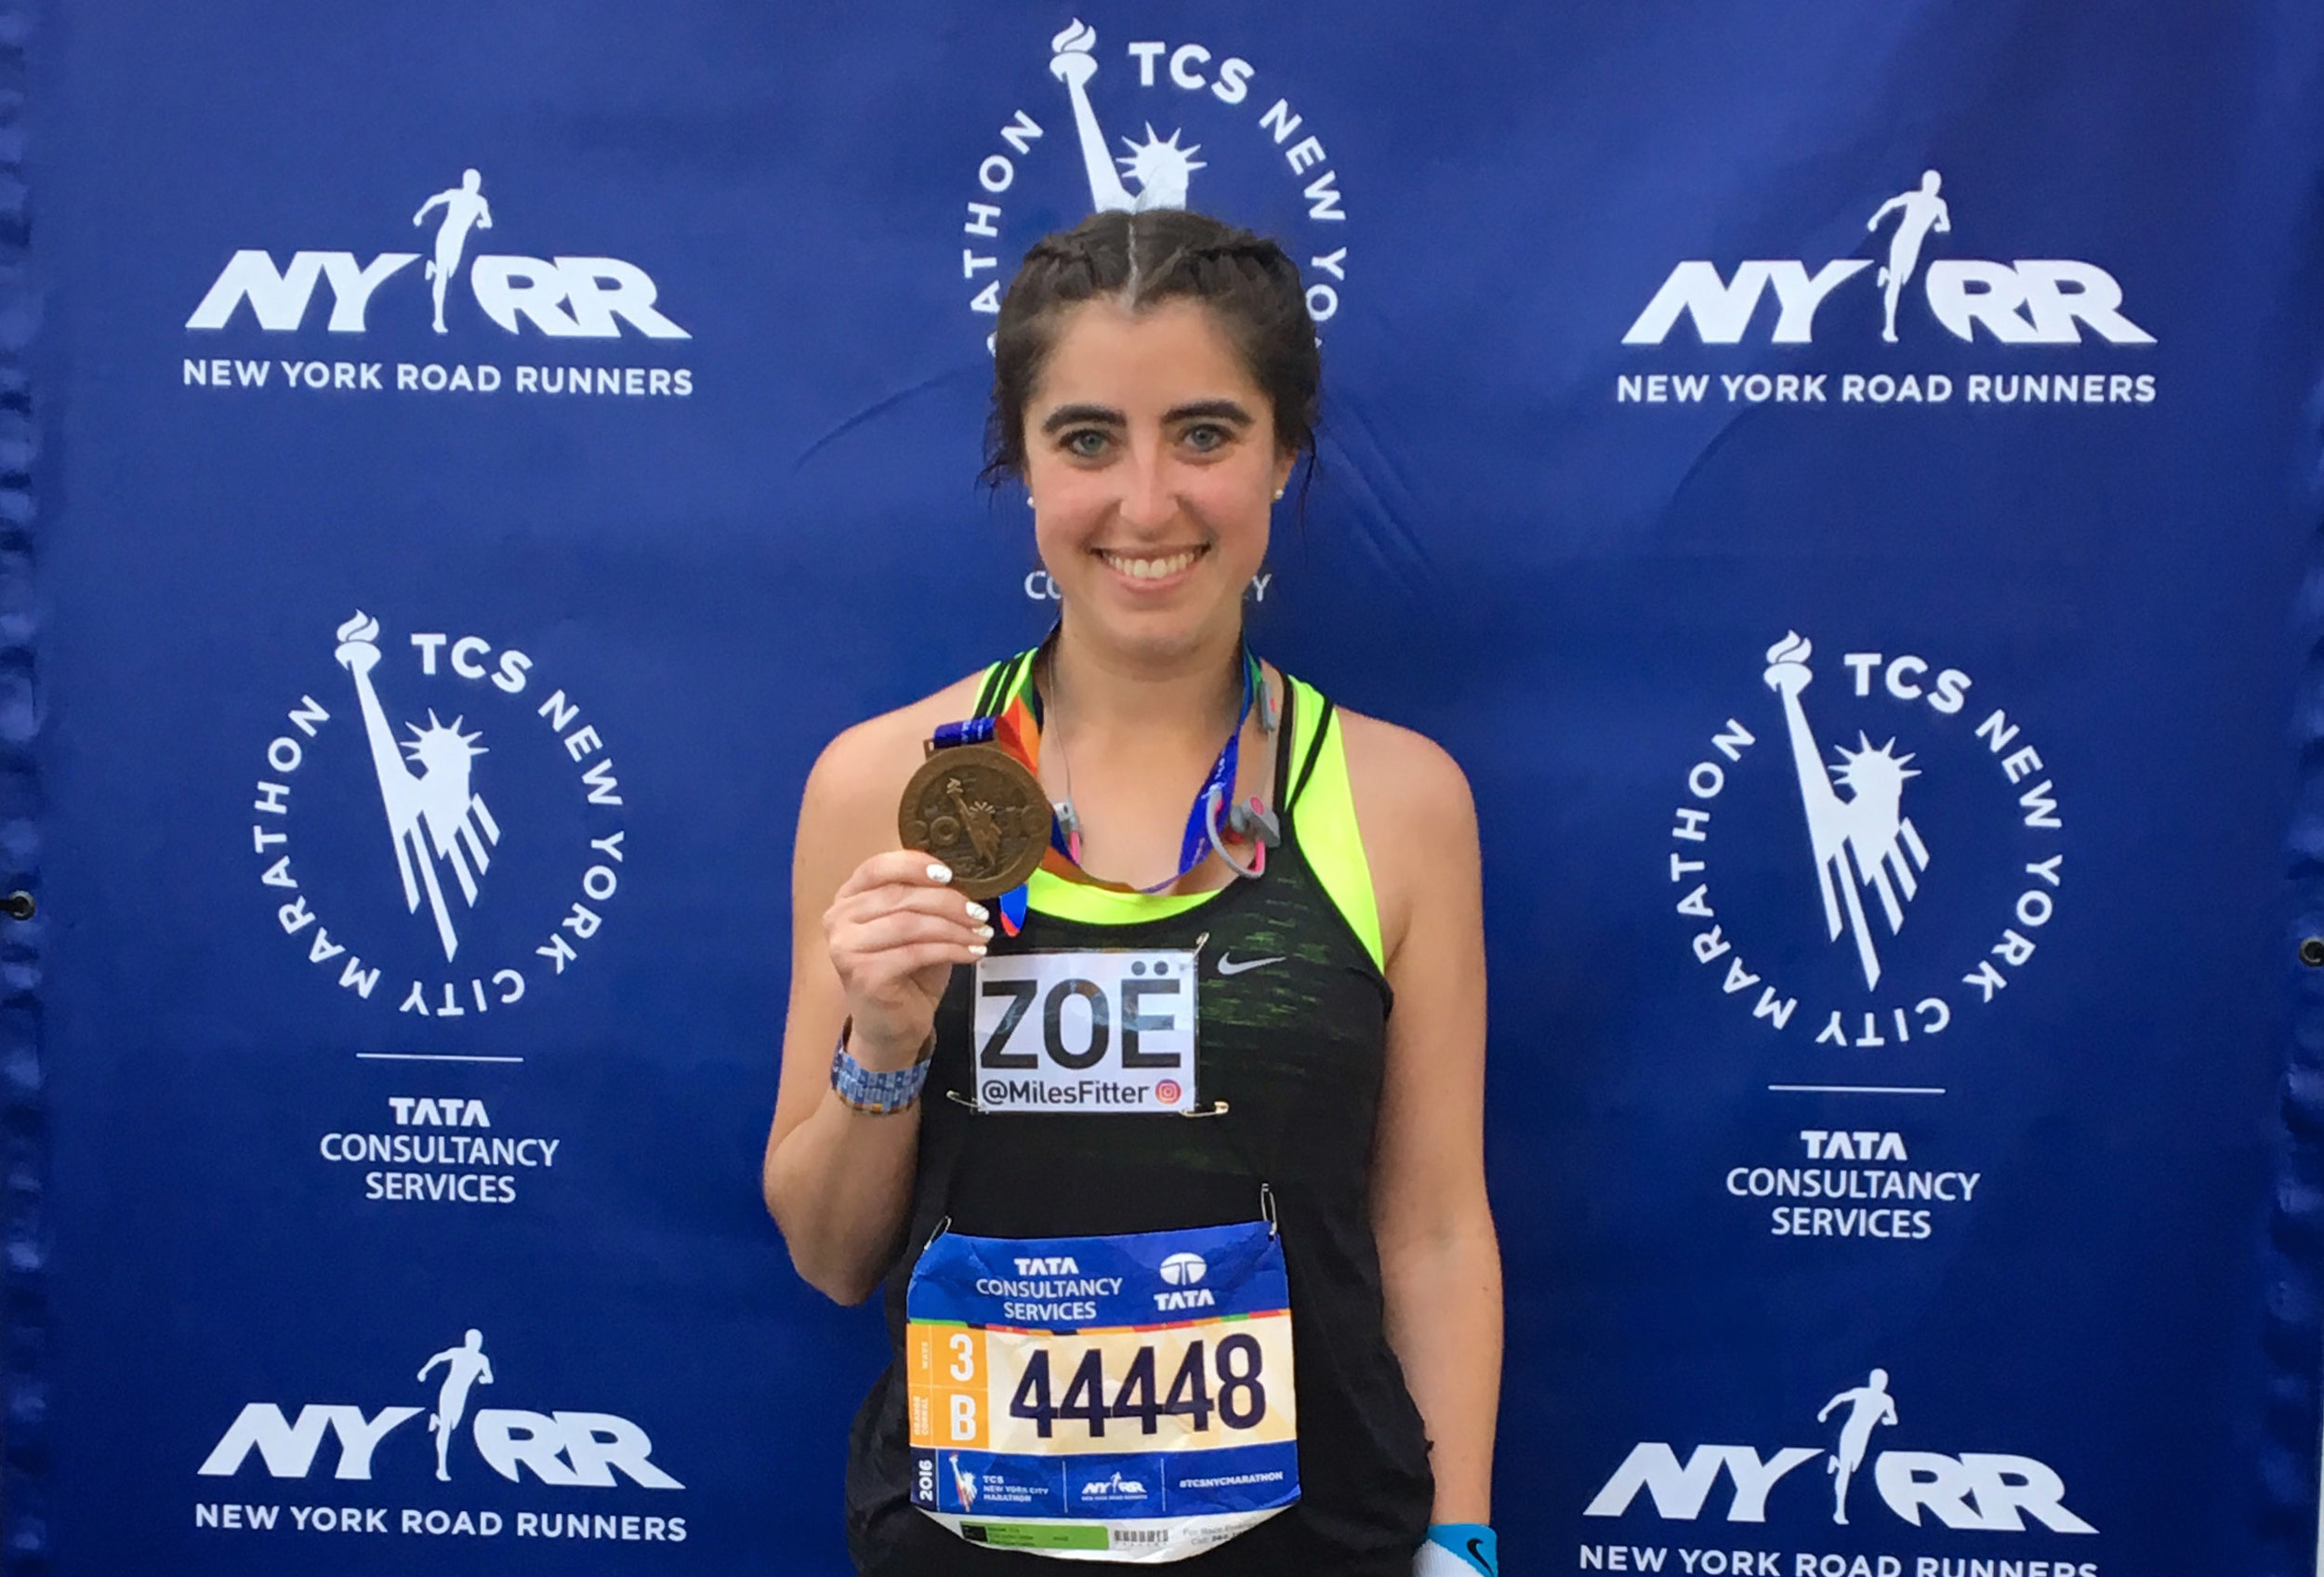 A runner with her 2016 New York City Marathon finisher's medal